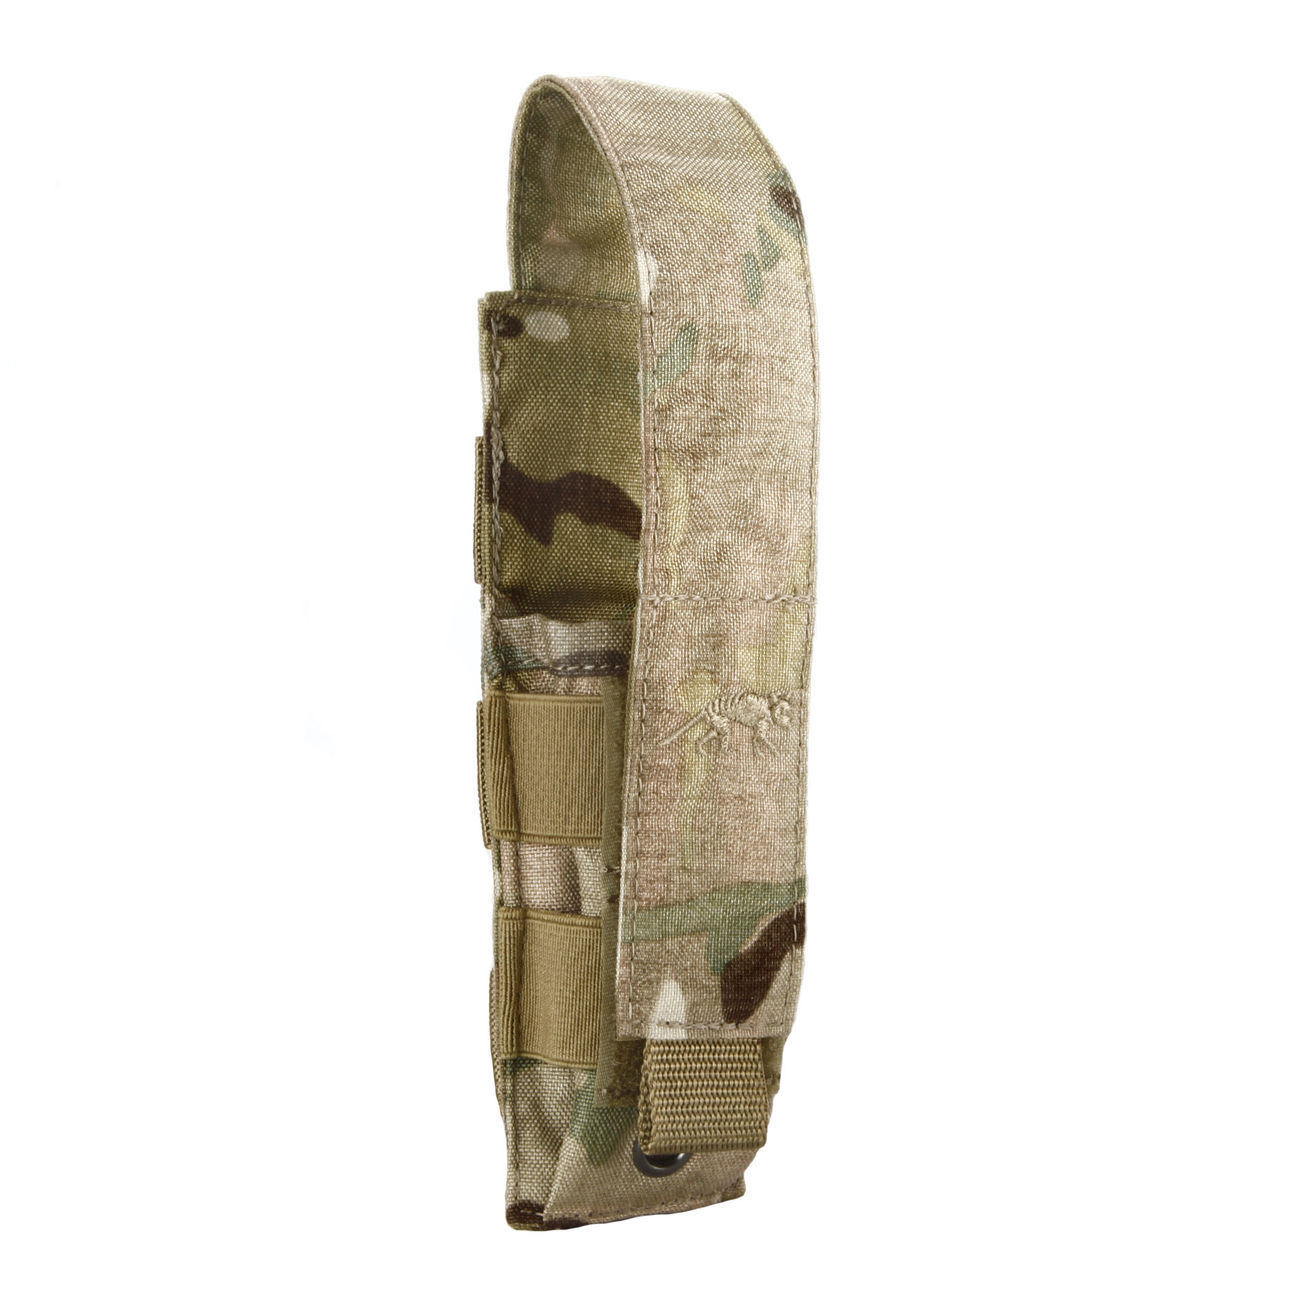 TT Magazintasche SGL Mag Pouch MP7 (40er) Multicam 3